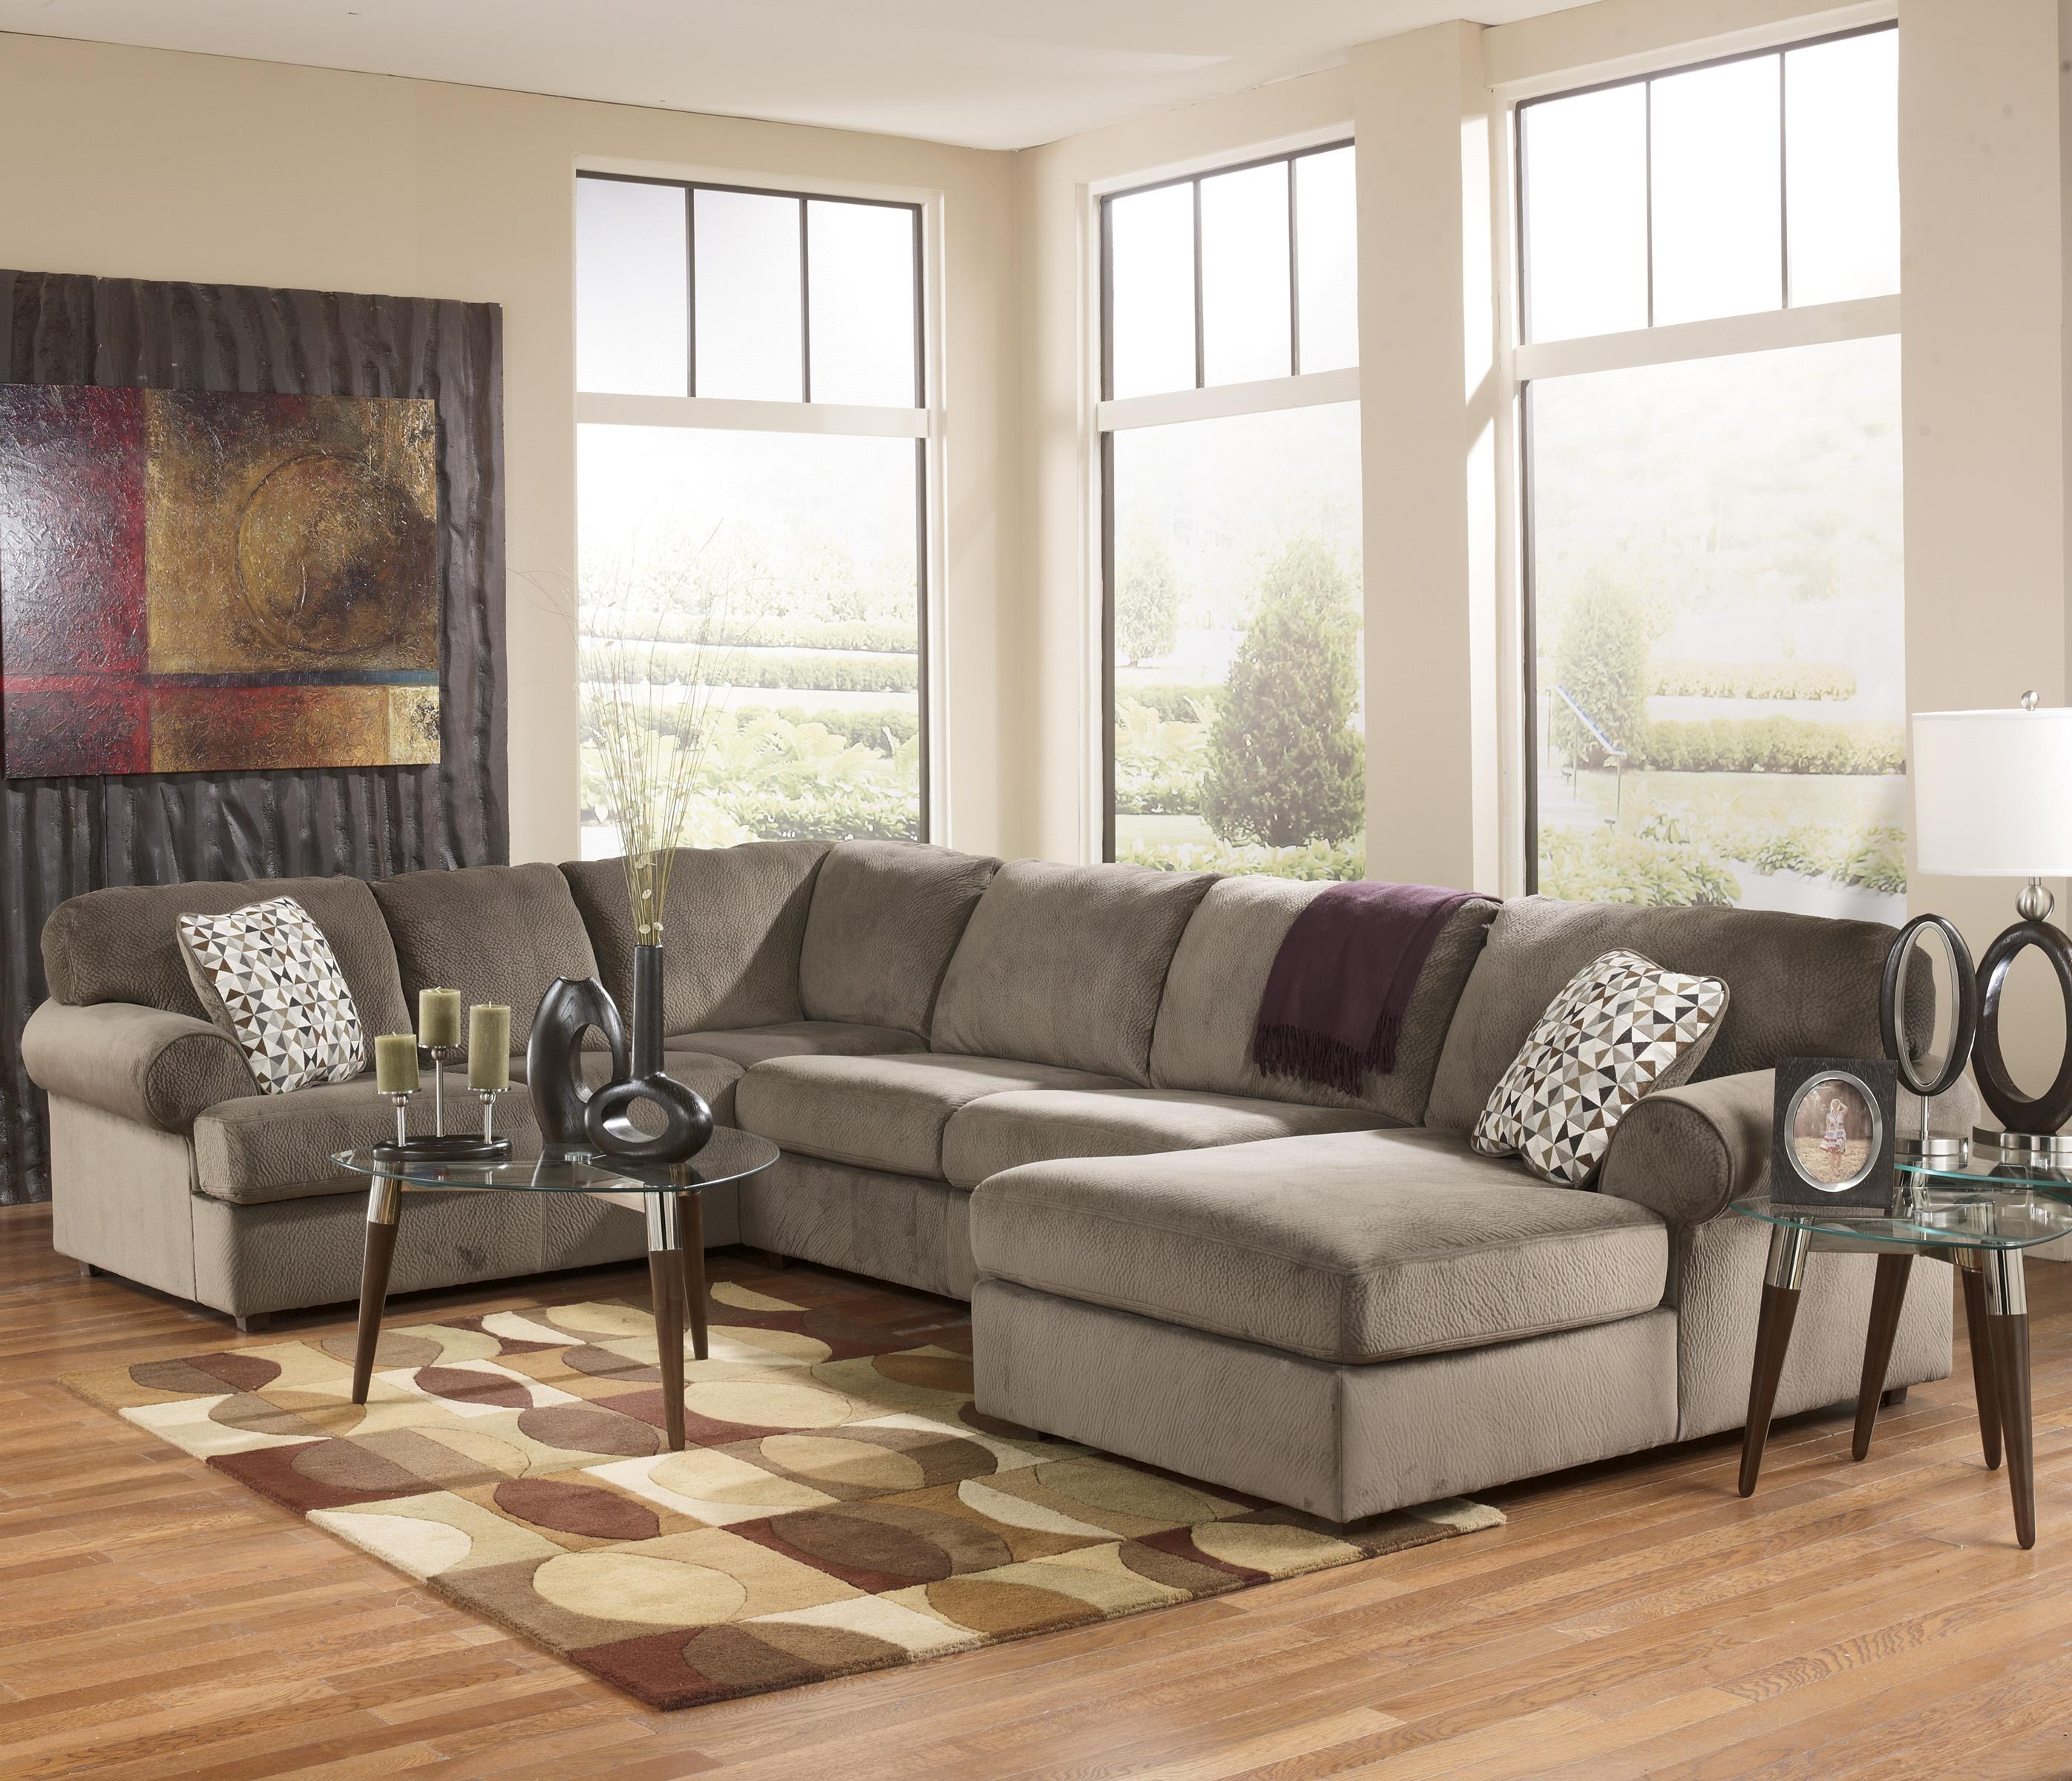 Ashley Furniture Tampa Fl: Casual Sectional Sofa With Right Chaise By Signature